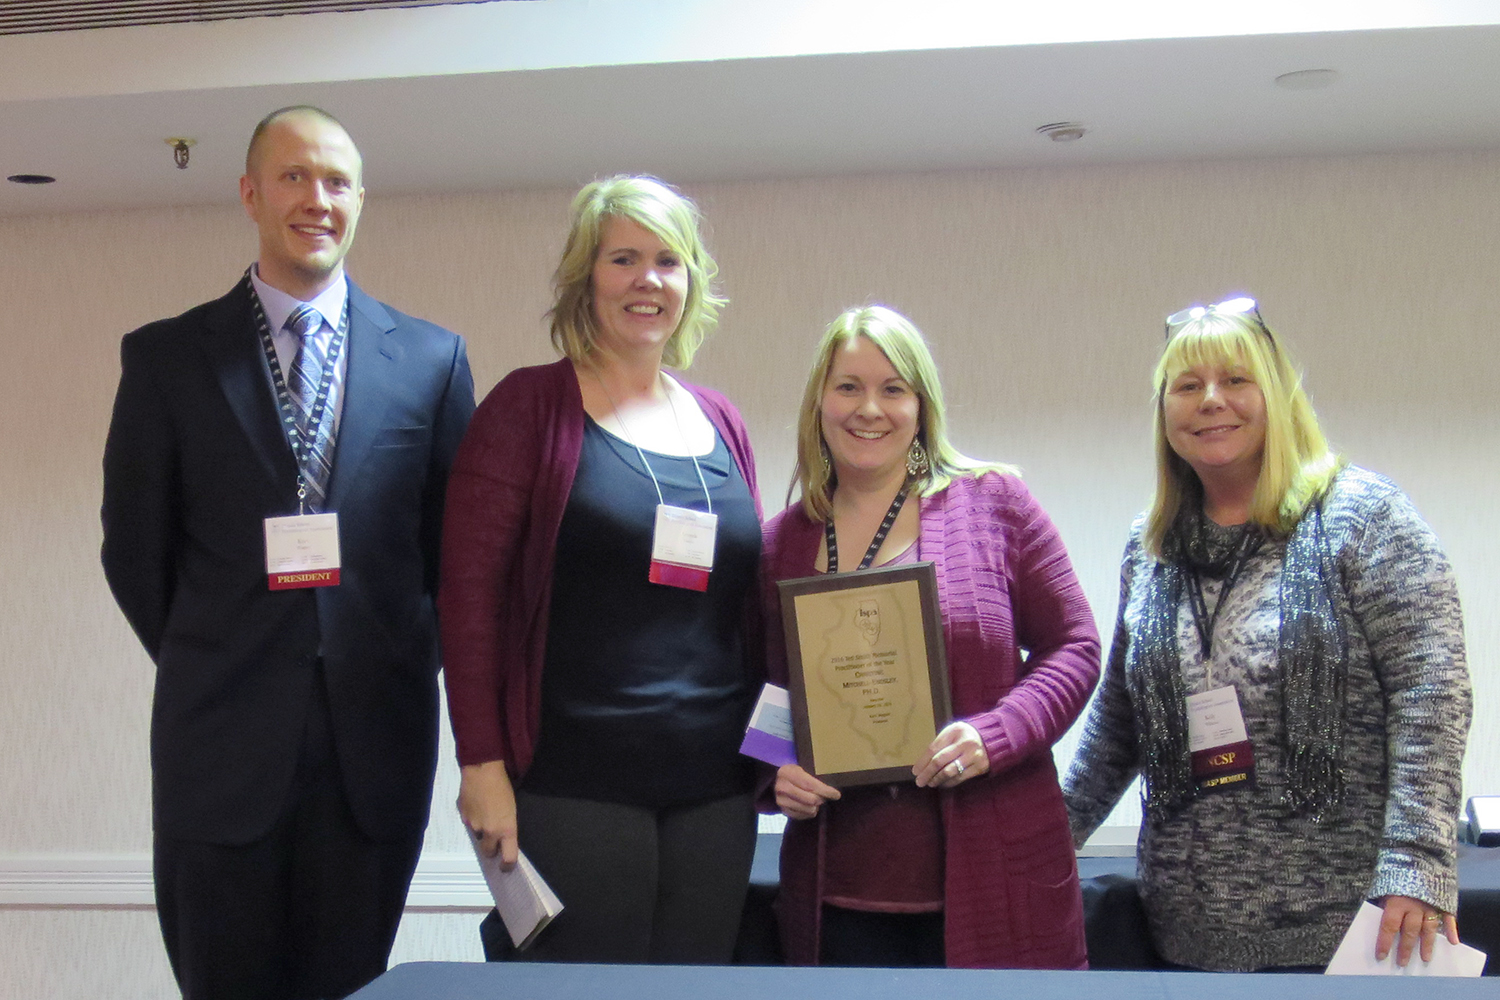 Christine Mitchell-Endsley with her peers and award